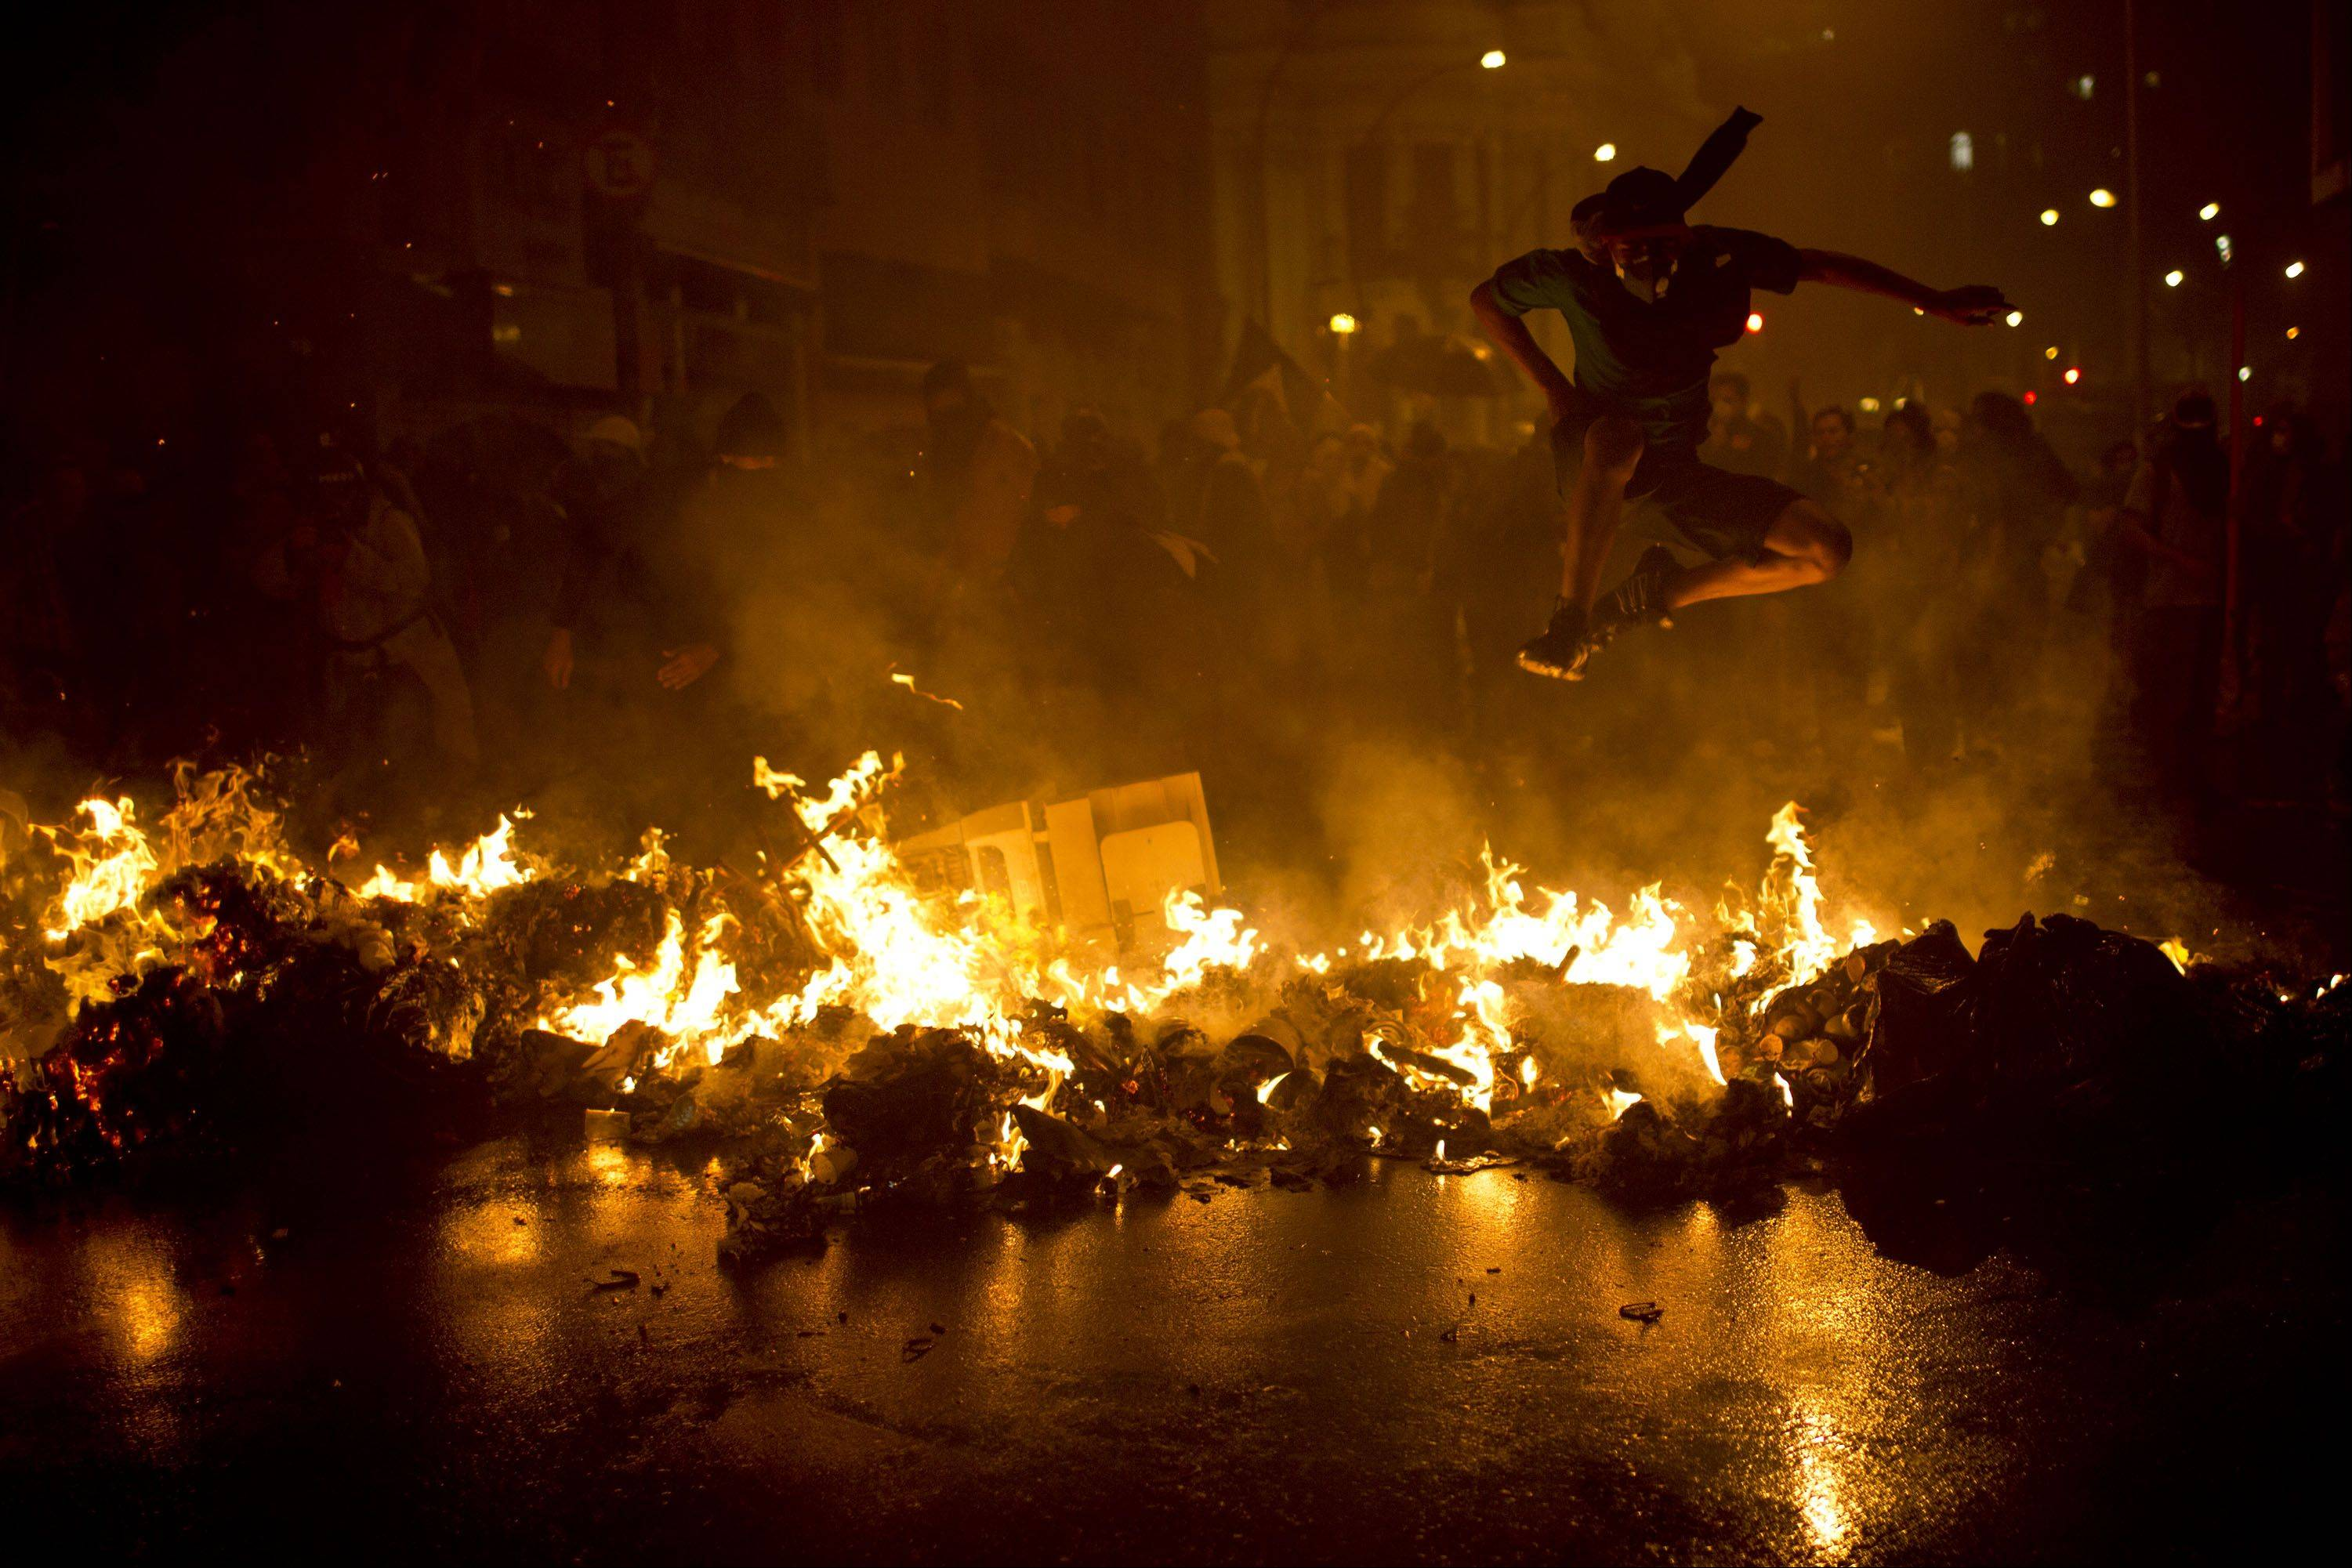 A demonstrator with his face covered jumps over a burning barricade at the Cinelandia square during a march in support of teachers on strike in Rio de Janeiro, Brazil, Monday, Oct. 7, 2013. Teachers have been on strike demanding better pay for almost two months.